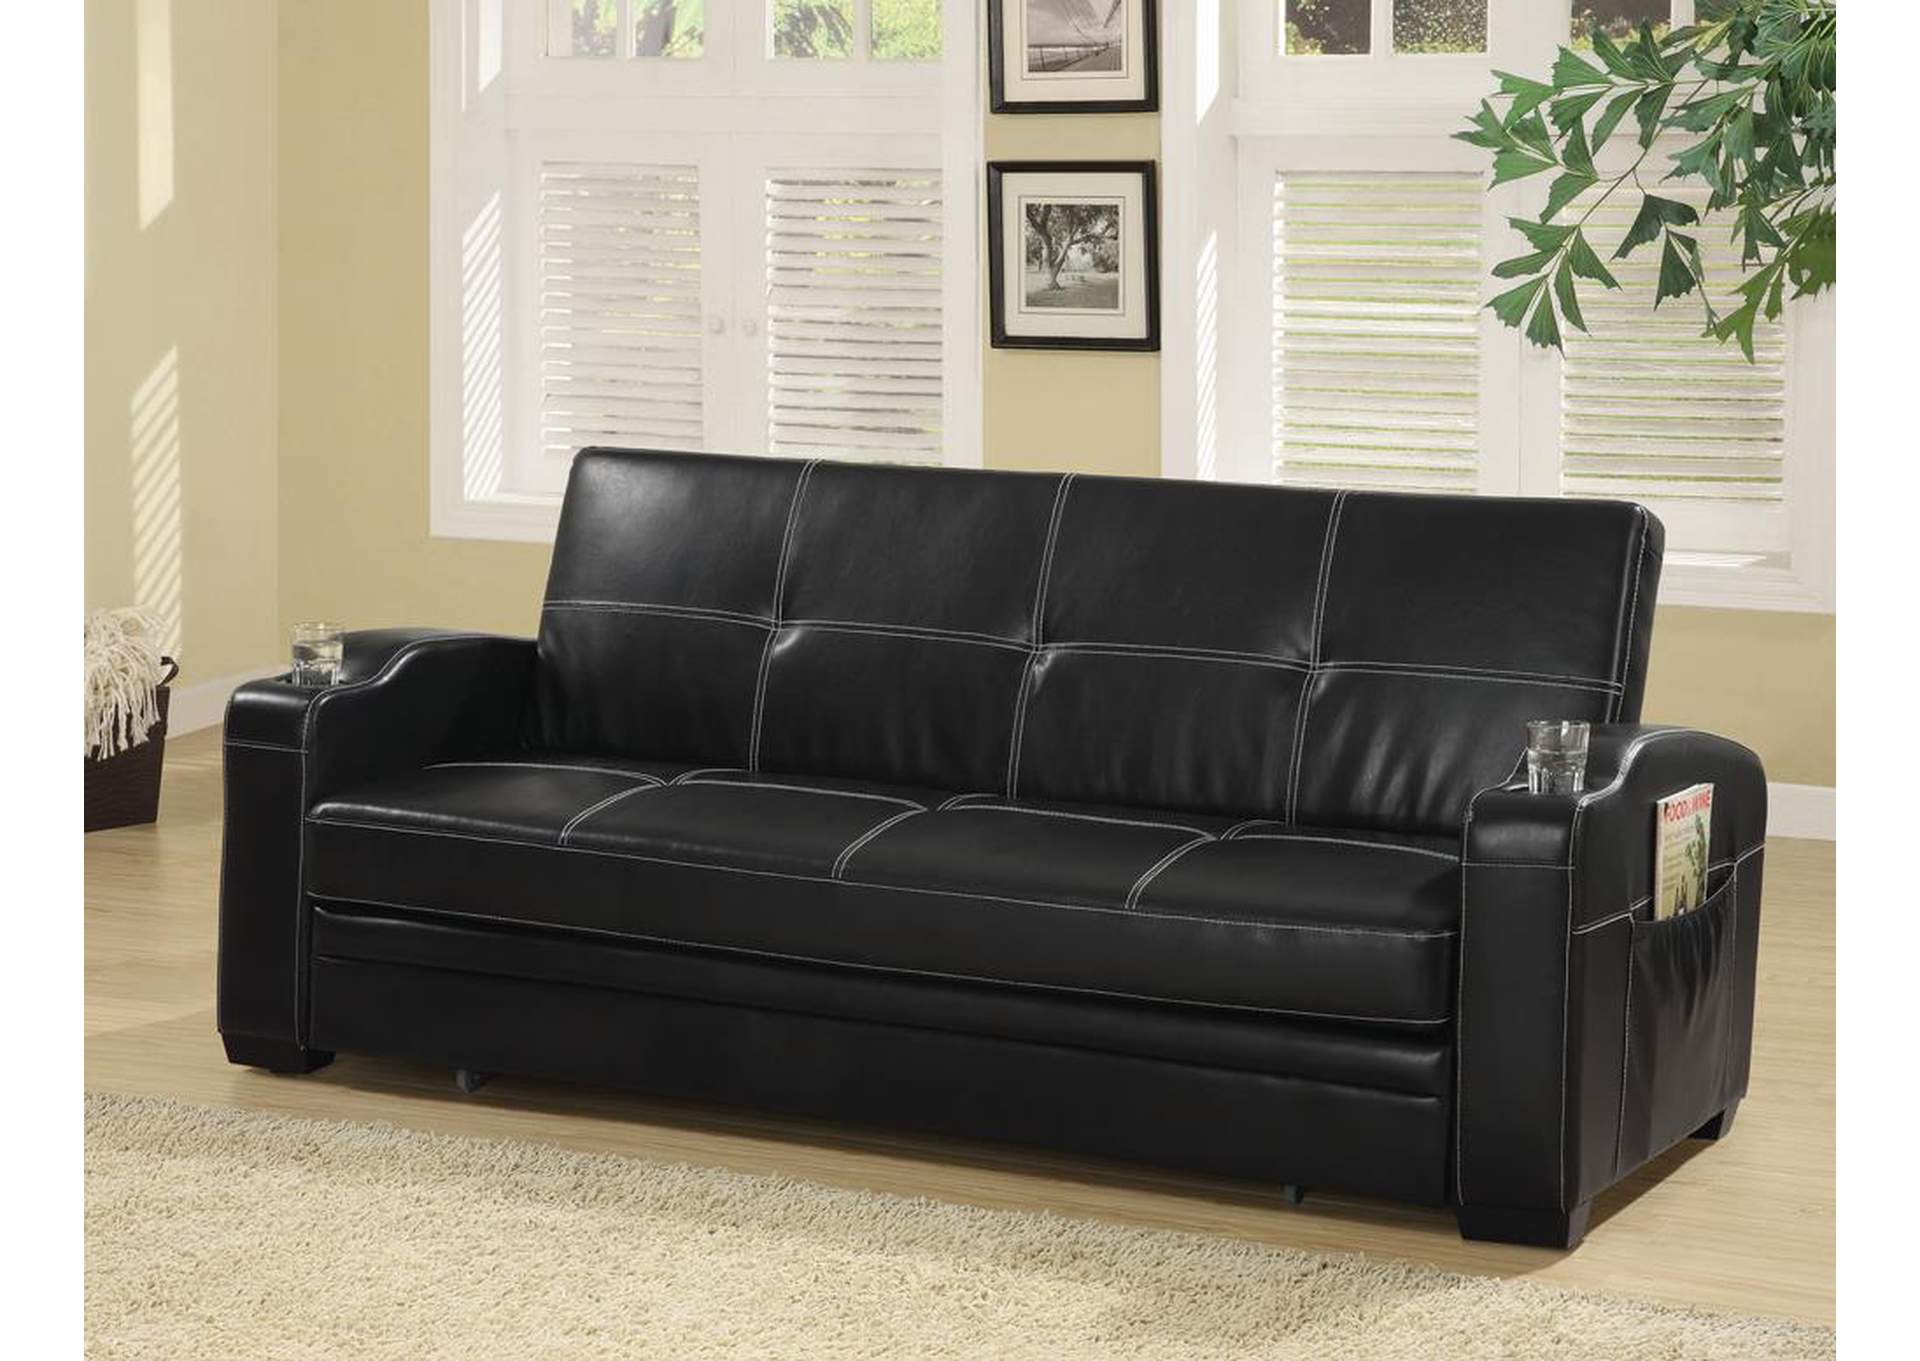 VIP Furniture Outlet - Upper Darby, PA Black Sofa Bed